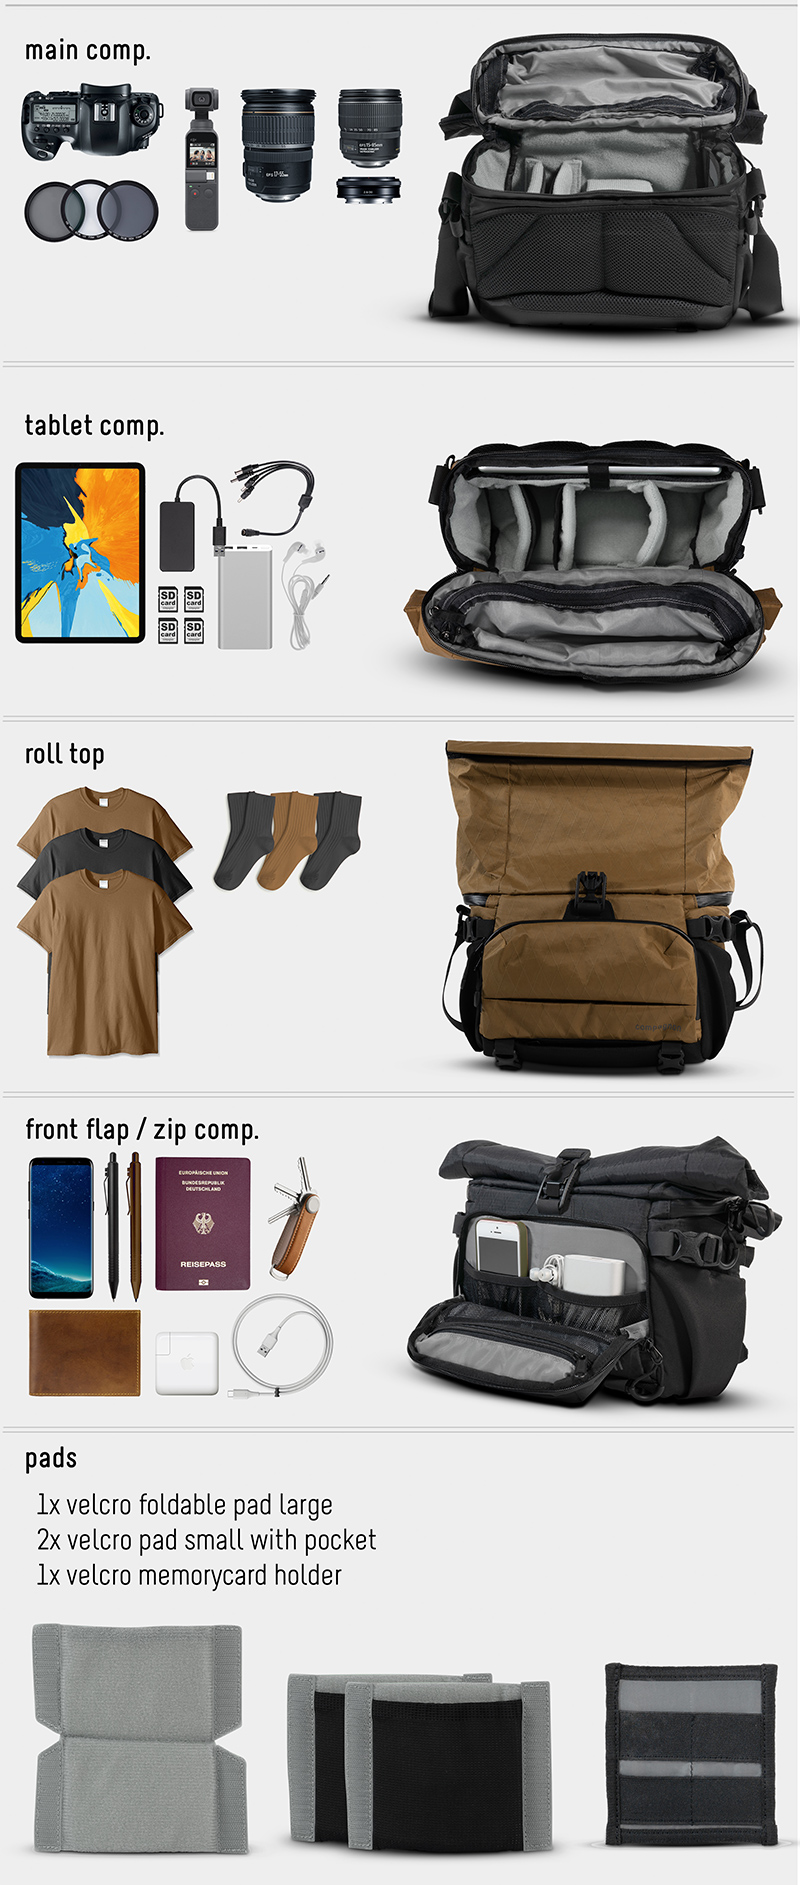 compagnon_element_line_sling11_whatfits_waspasstrein_camerabag